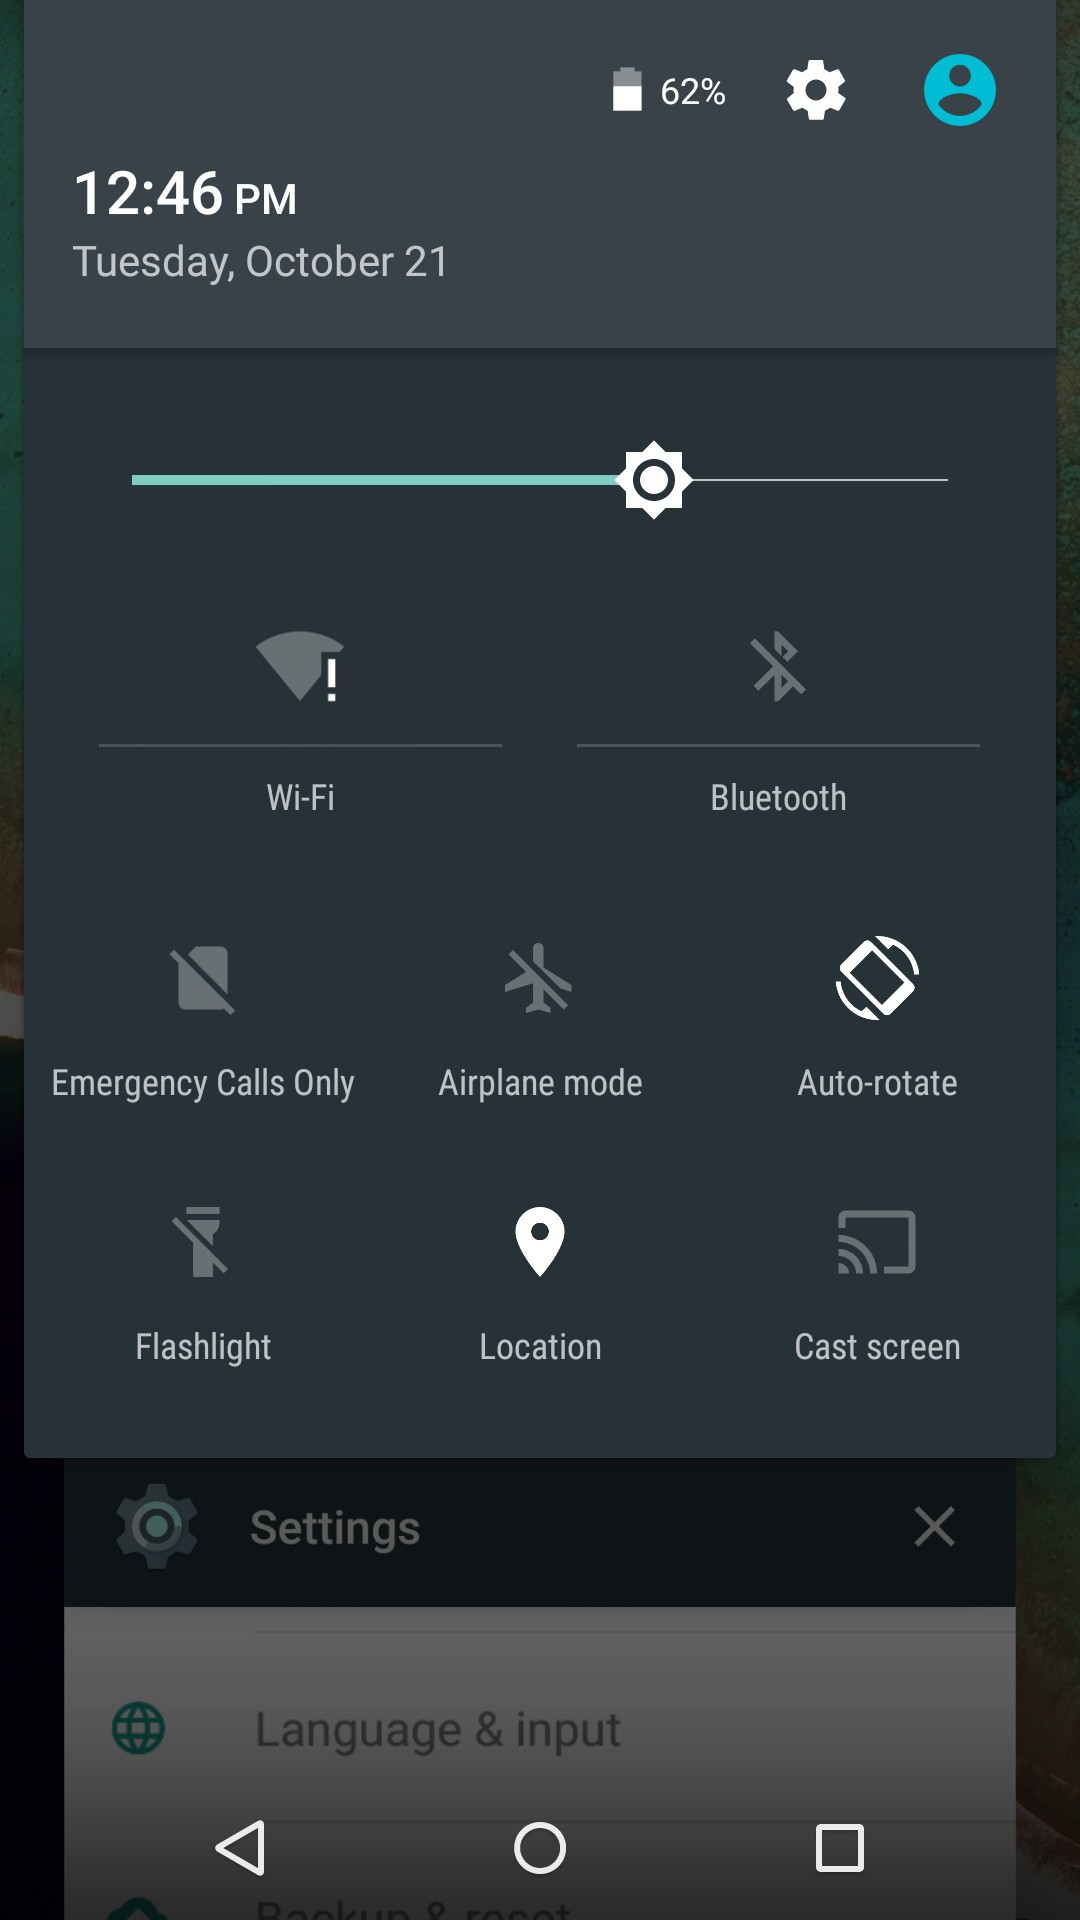 1413890171_new-toggles-in-the-pull-down-connectivity-menu-screen-cast-flashlight.jpg